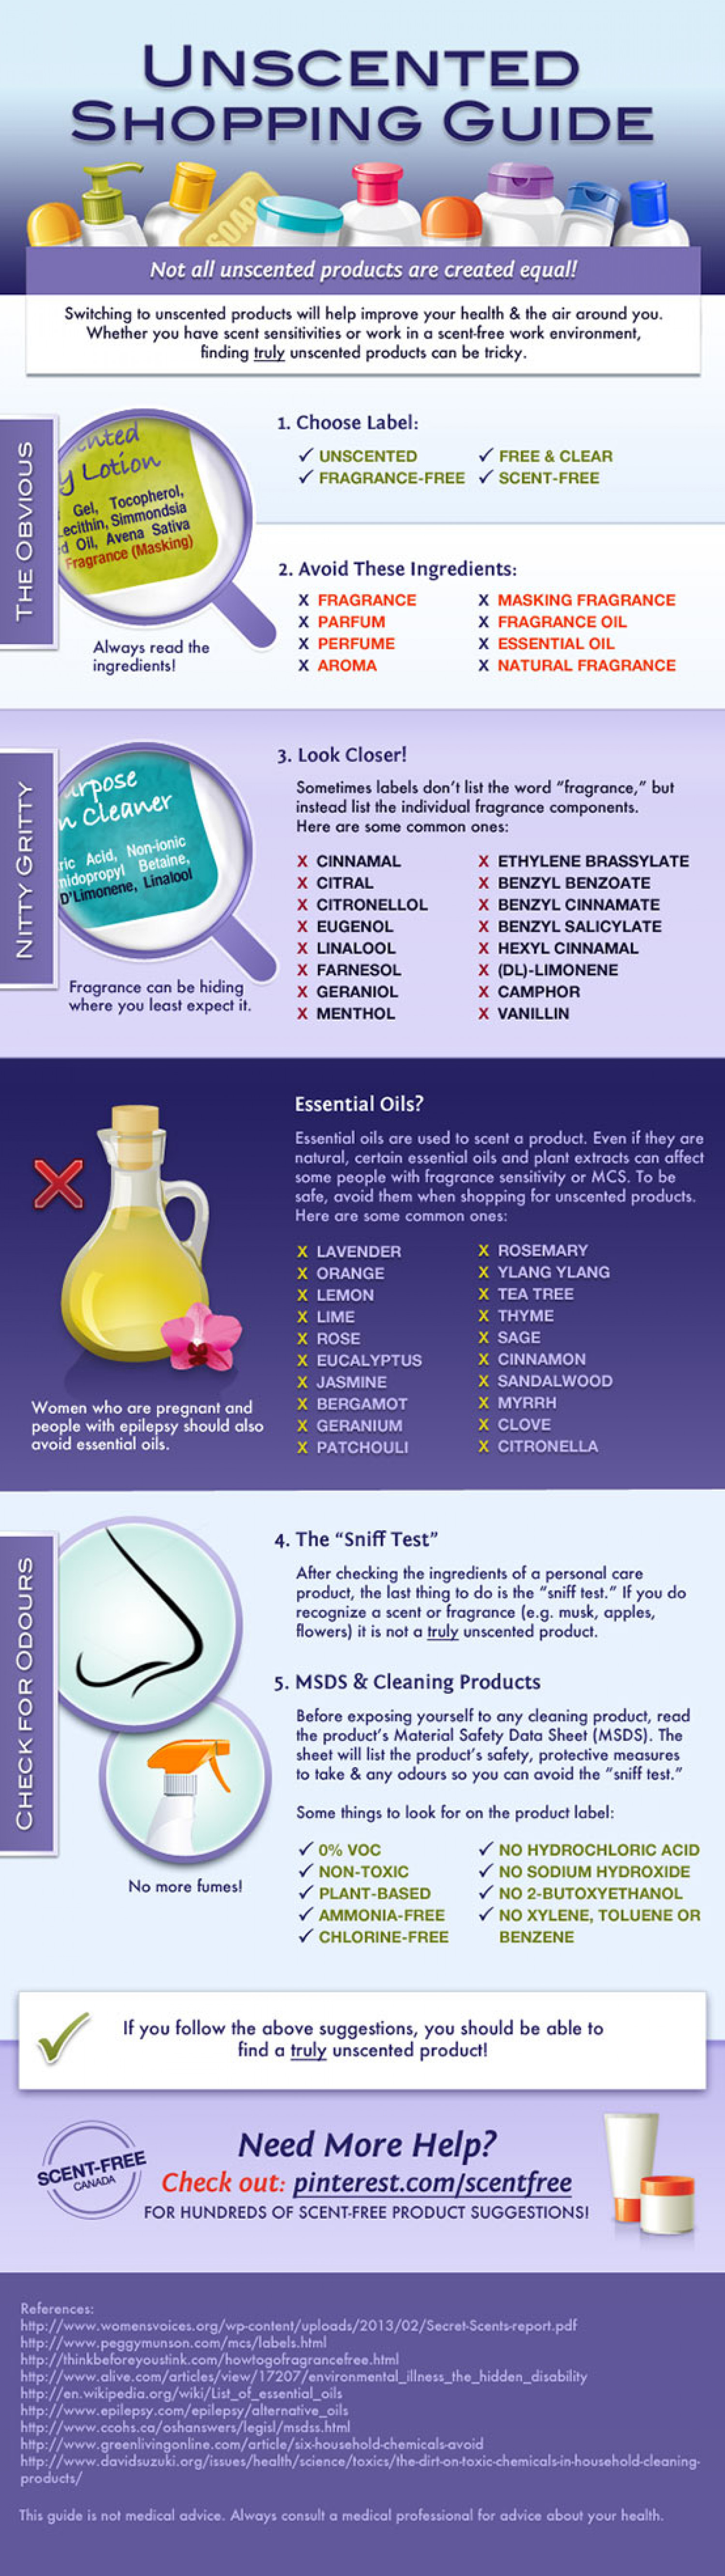 Unscented Shopping Guide Infographic